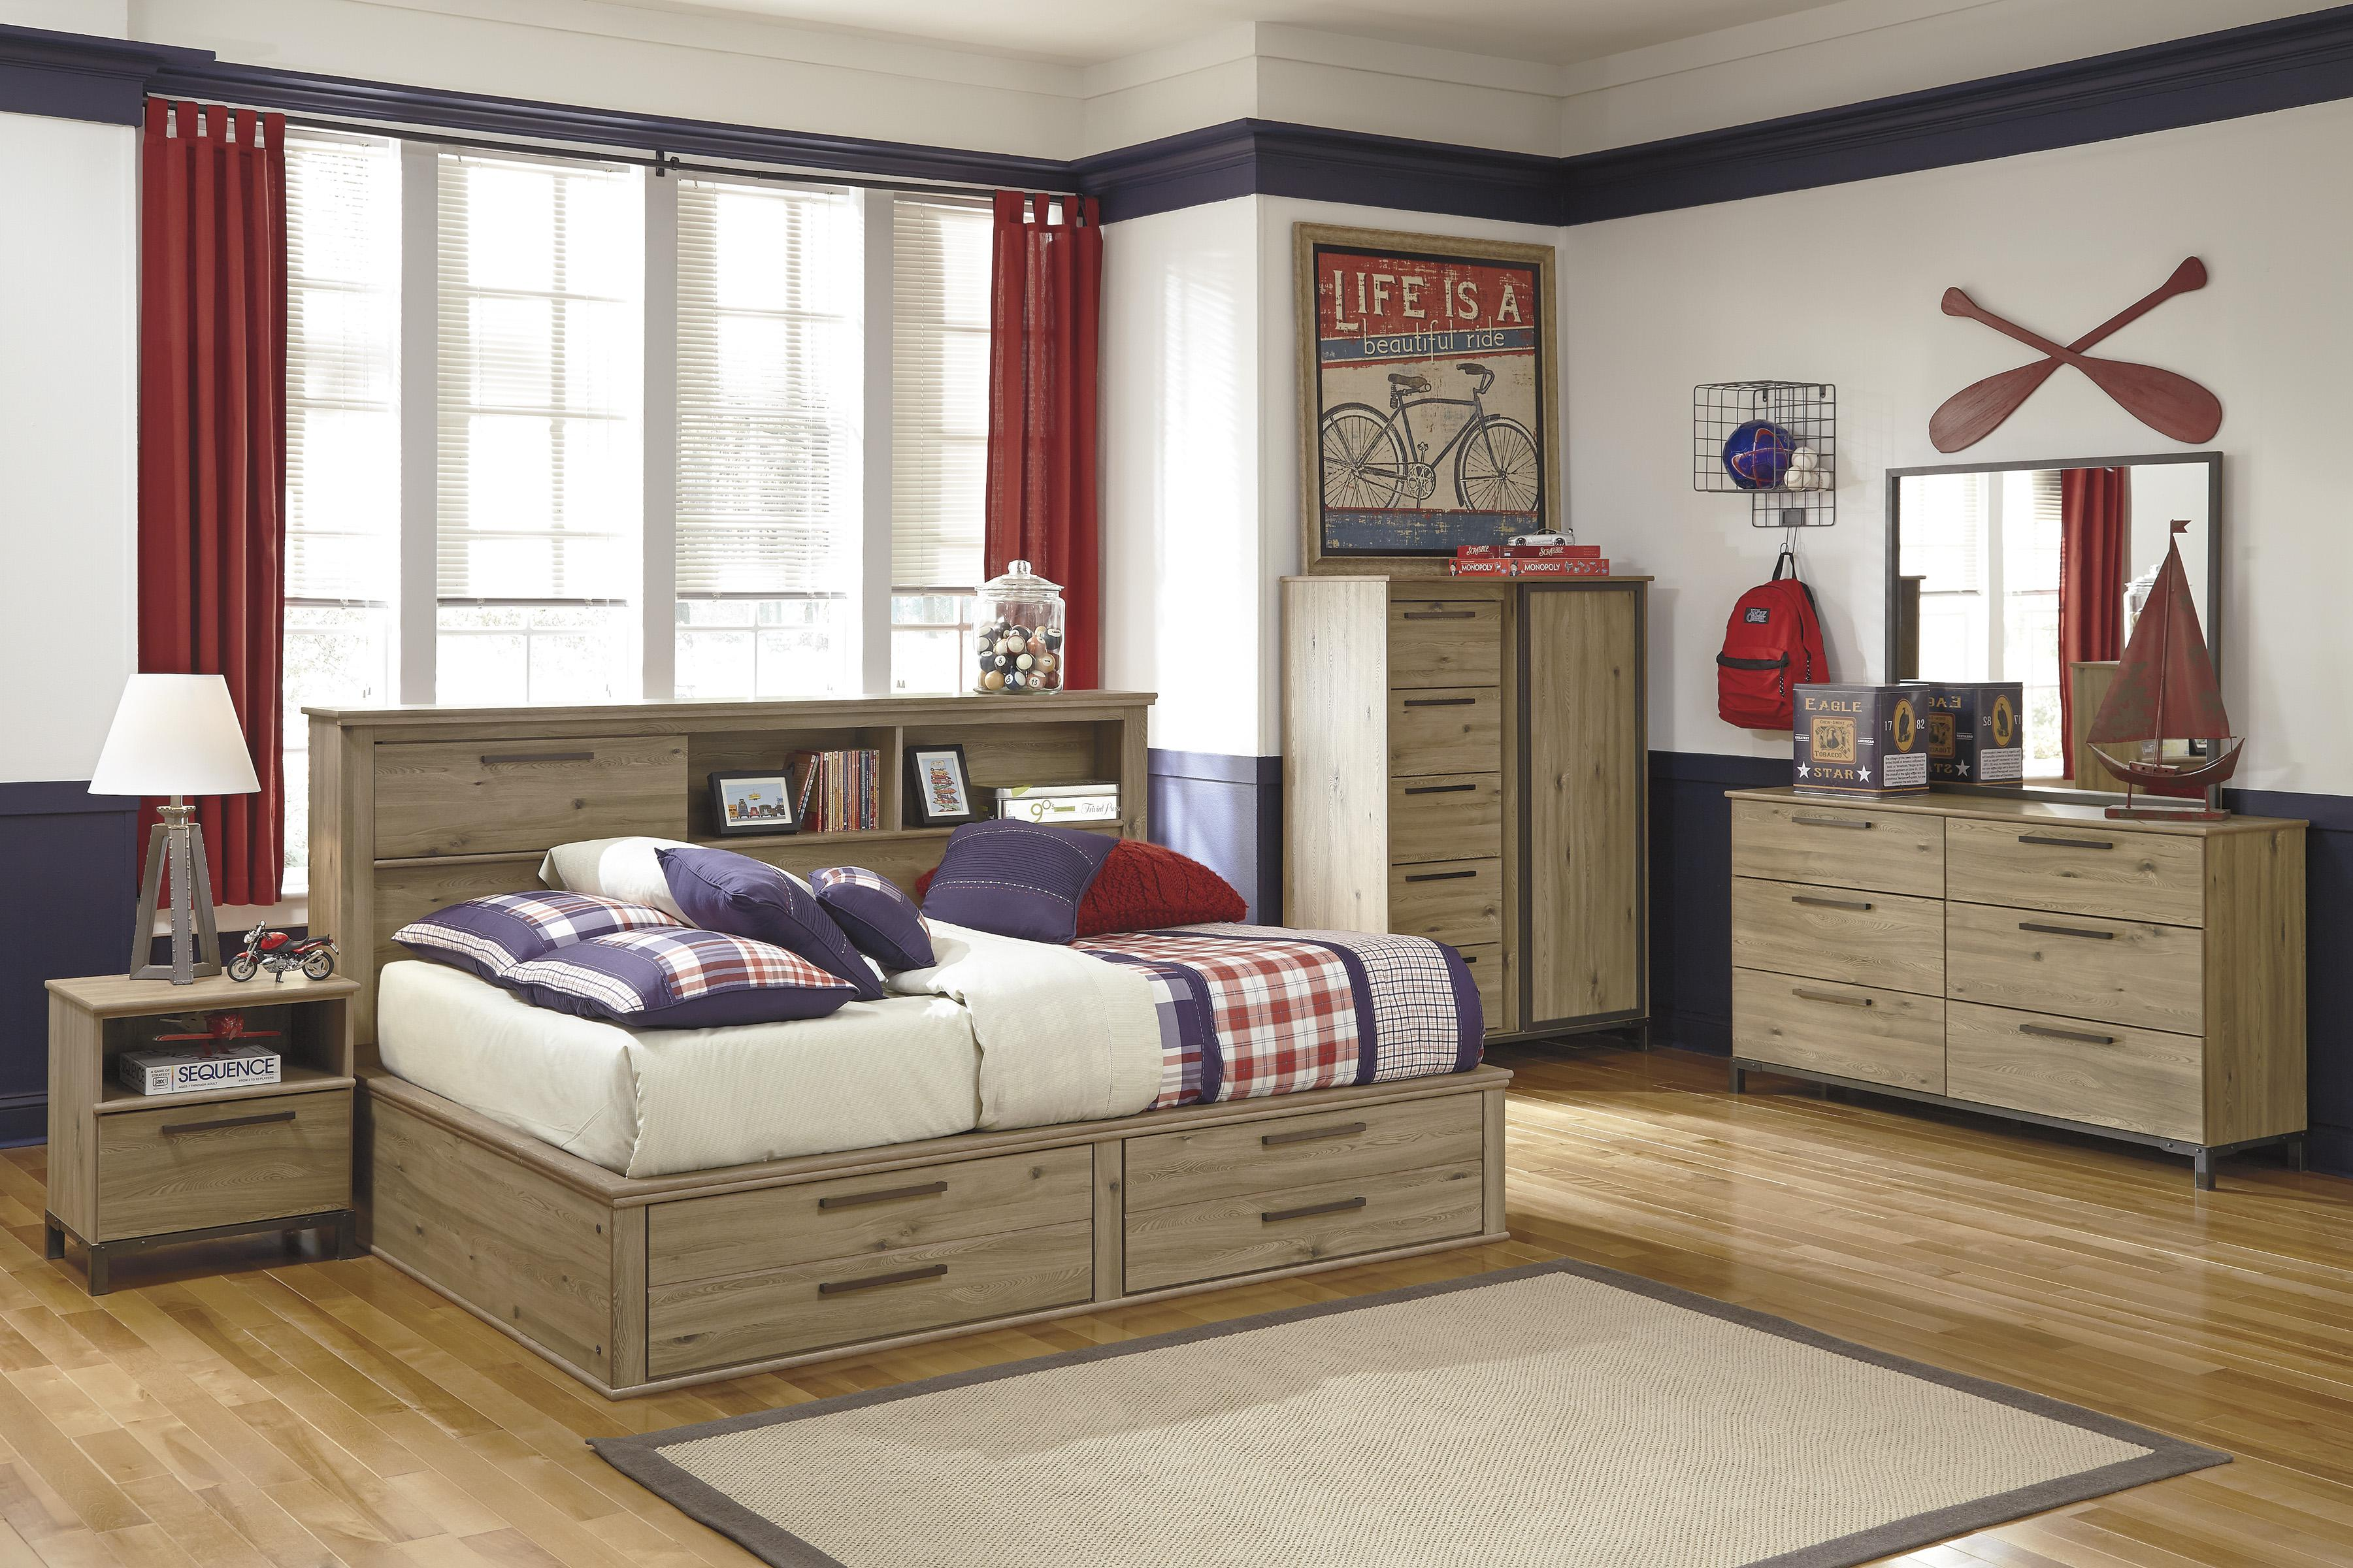 Signature Design by Ashley Dexifield Full Bedroom Group - Item Number: B298 F Bedroom Group 4